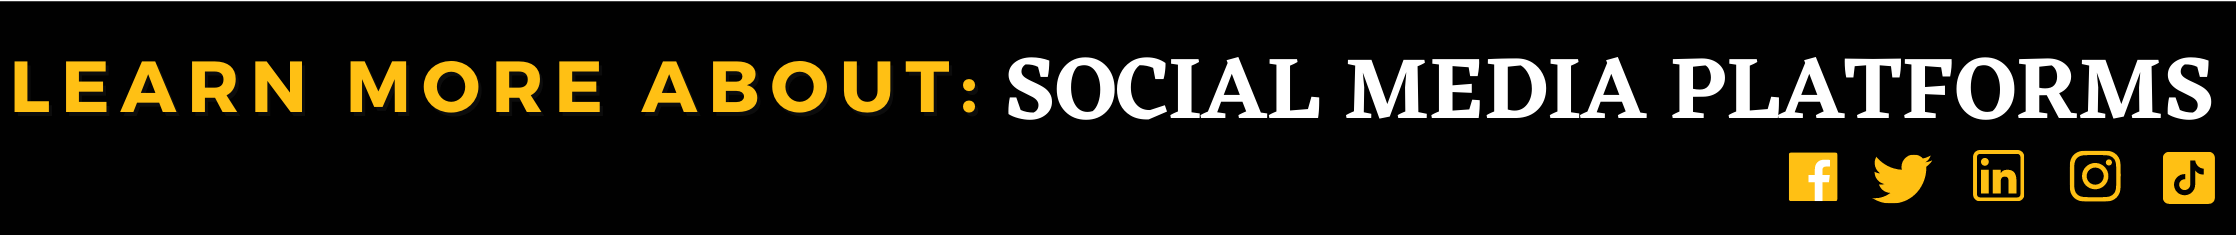 Social Media Learn More About Platforms Banner